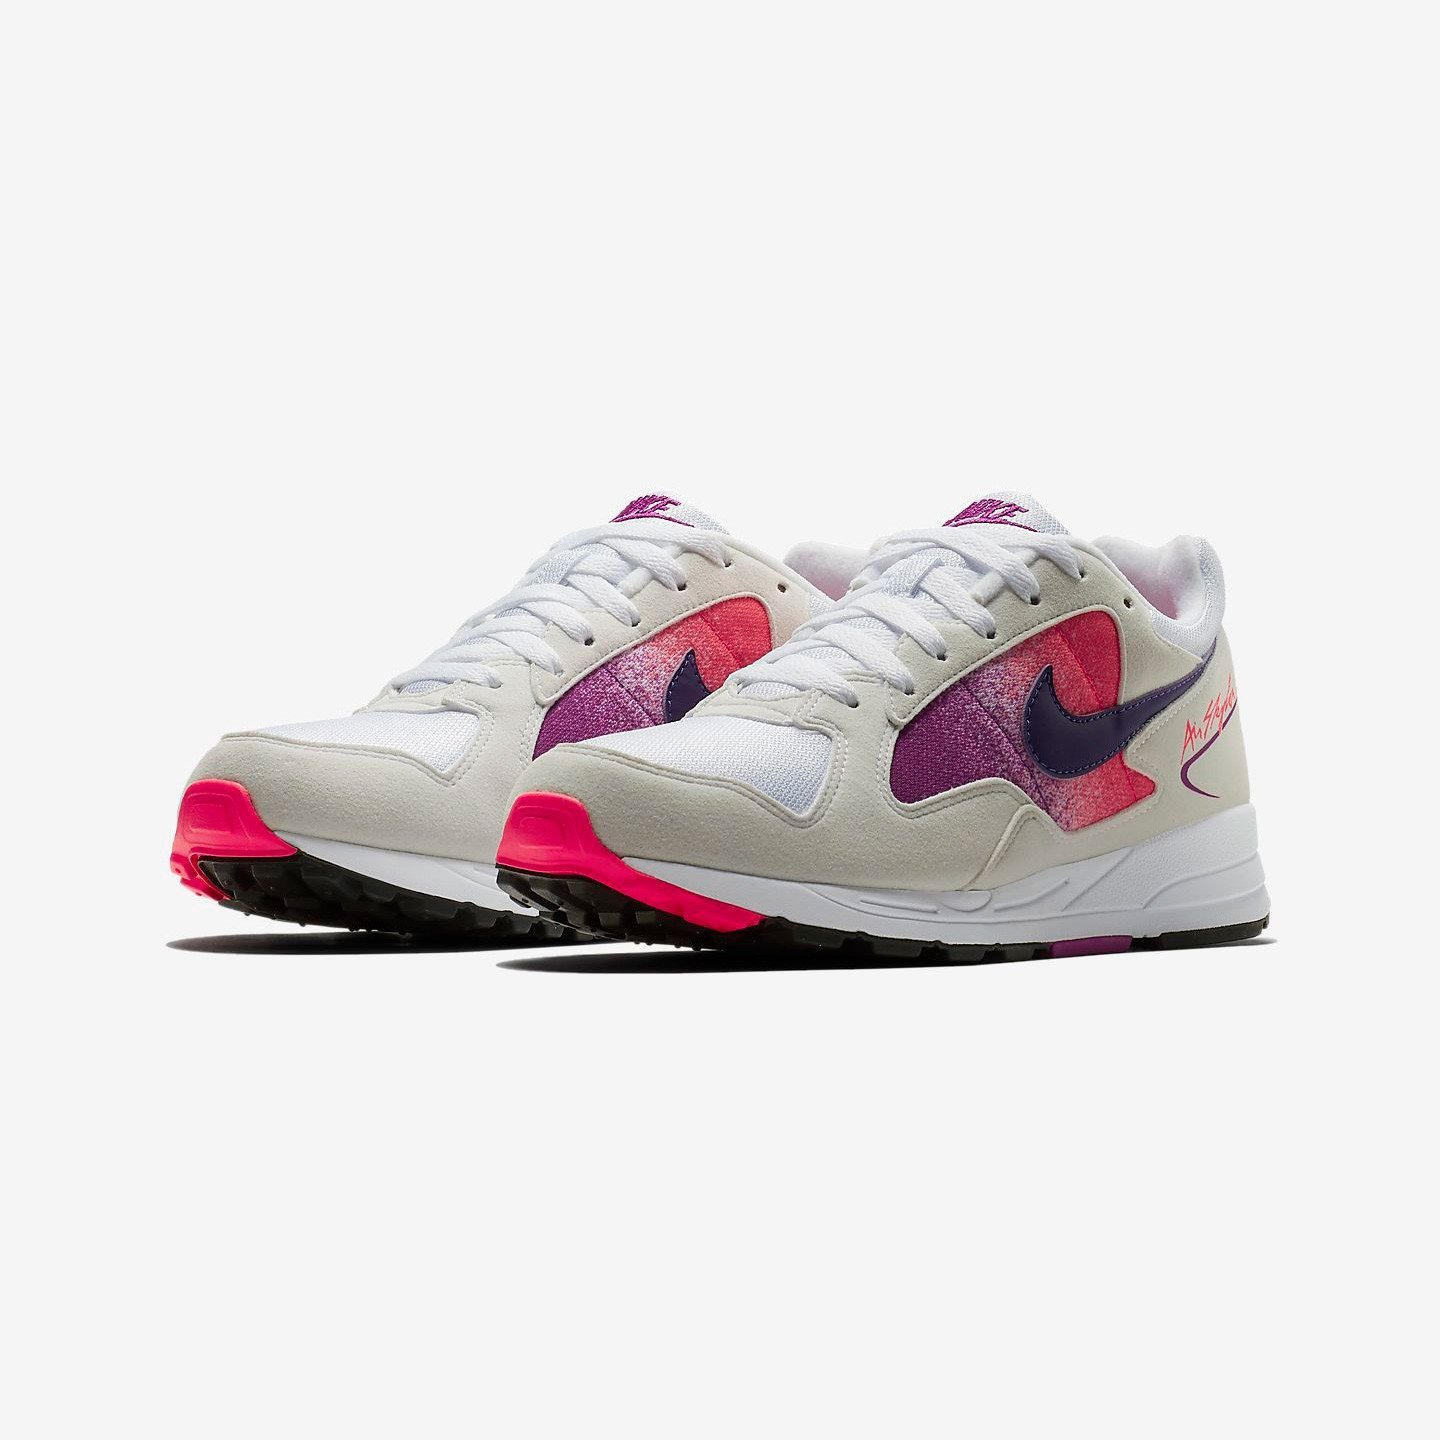 Nike Air Skylon II White / Court Purple / Solar Red AO1551-103